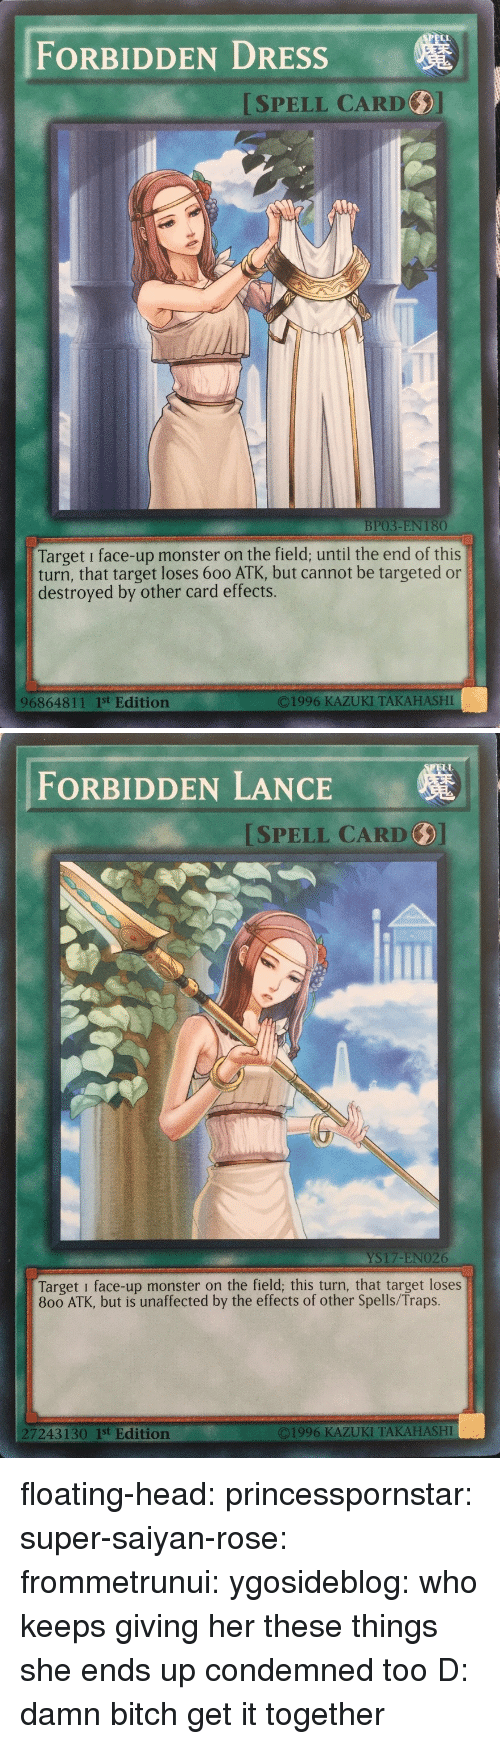 saiyan: FORBIDDEN DRESSs  ISPELL CARD  BP03-EN 180  Target i face-up monster on the field; until the end of this  turn, that target loses 600 ATK, but cannot be targeted or  destroyed by other card effects.  96864811 1st Edition  O1996 KAZUKI TAKAHASHI   ELL  FORBIDDEN LANCE  SPELL CARD  YS17-ENO26  Target i face-up monster on the field; this turn, that target loses  800 ATK, but is unaffected by the effects of other Spells/Traps.  7243130 1st Edition  ©1996 KAZUKI TAKAHASHI floating-head: princesspornstar:  super-saiyan-rose:  frommetrunui:   ygosideblog: who keeps giving her these things   she ends up condemned too D:    damn bitch get it together